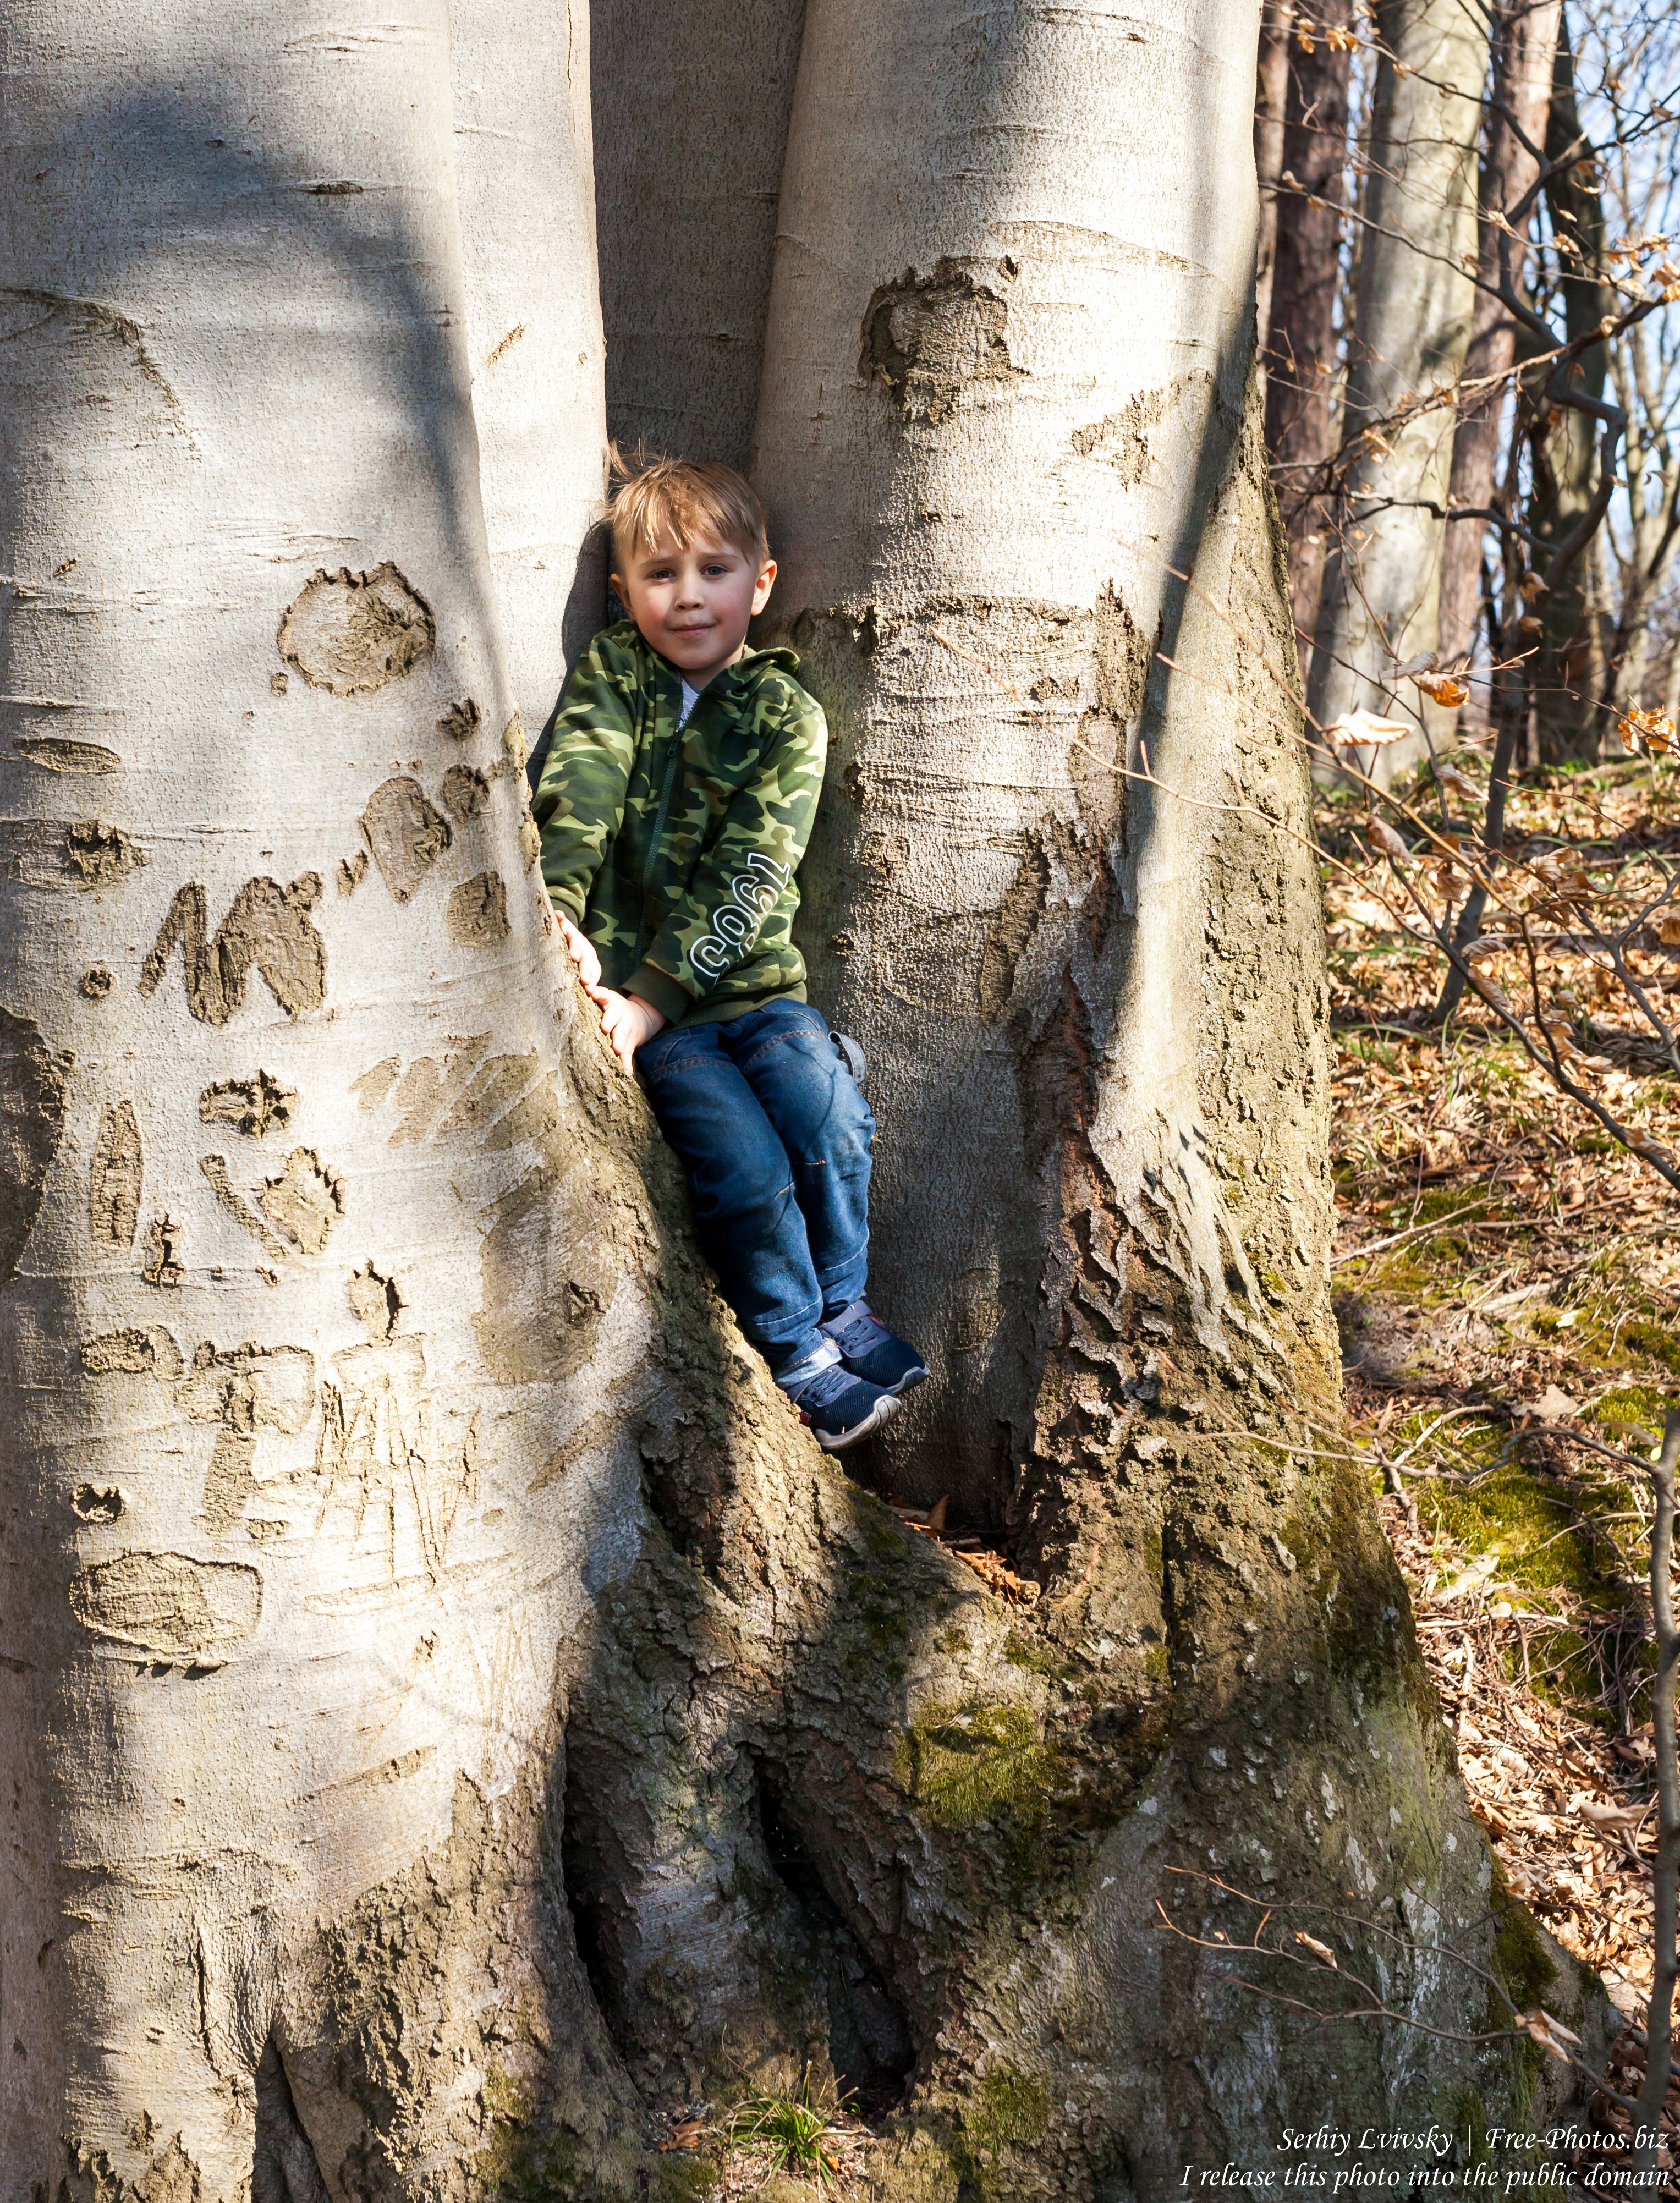 a 6-year-old Catholic boy photographed in March 2019 by Serhiy Lvivsky, picture 1